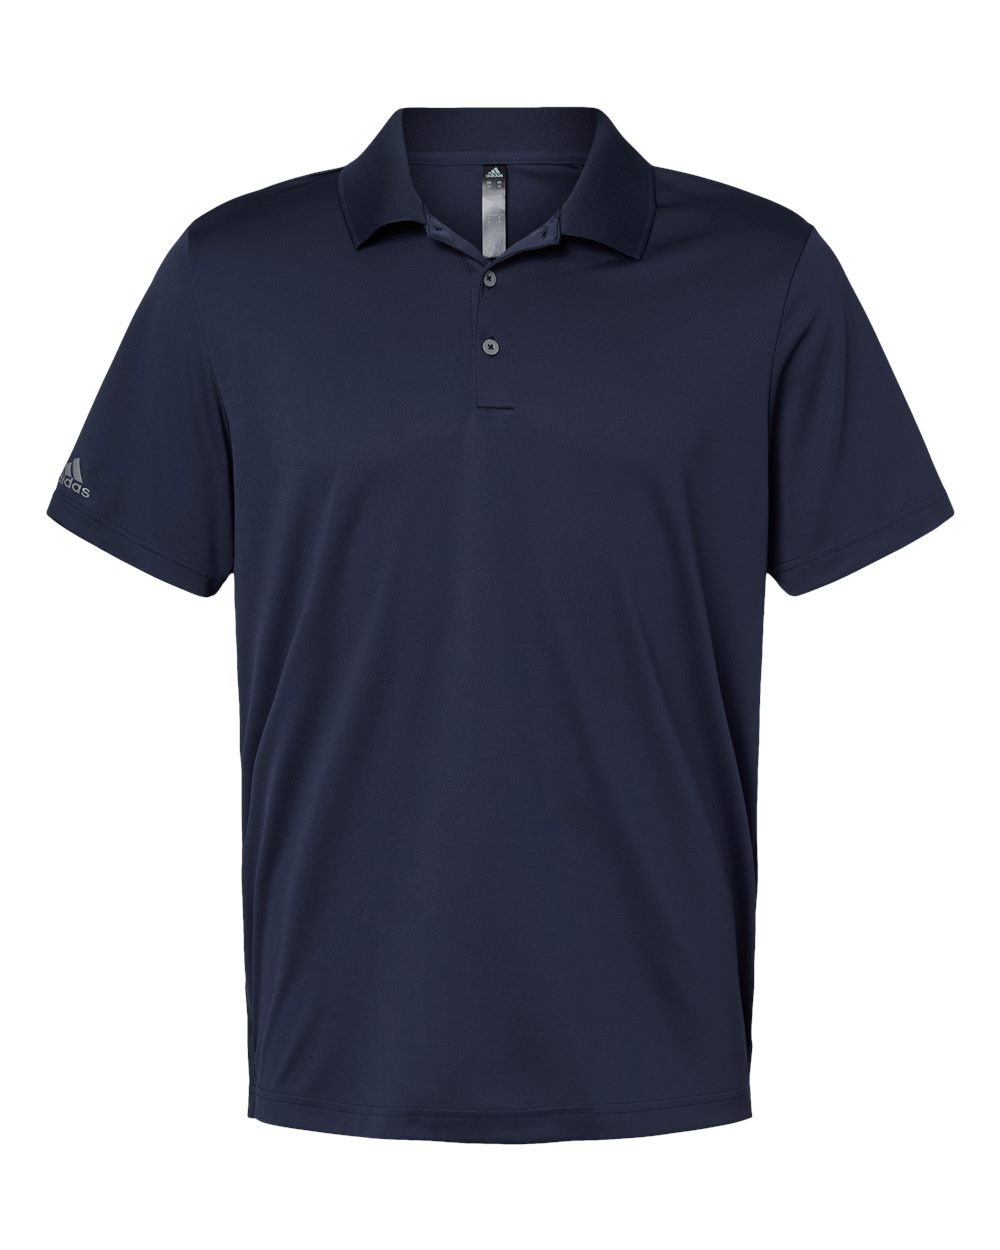 Adidas-Performance-Sport-Shirt-Polo-Button-A230-up-to-4XL miniature 31